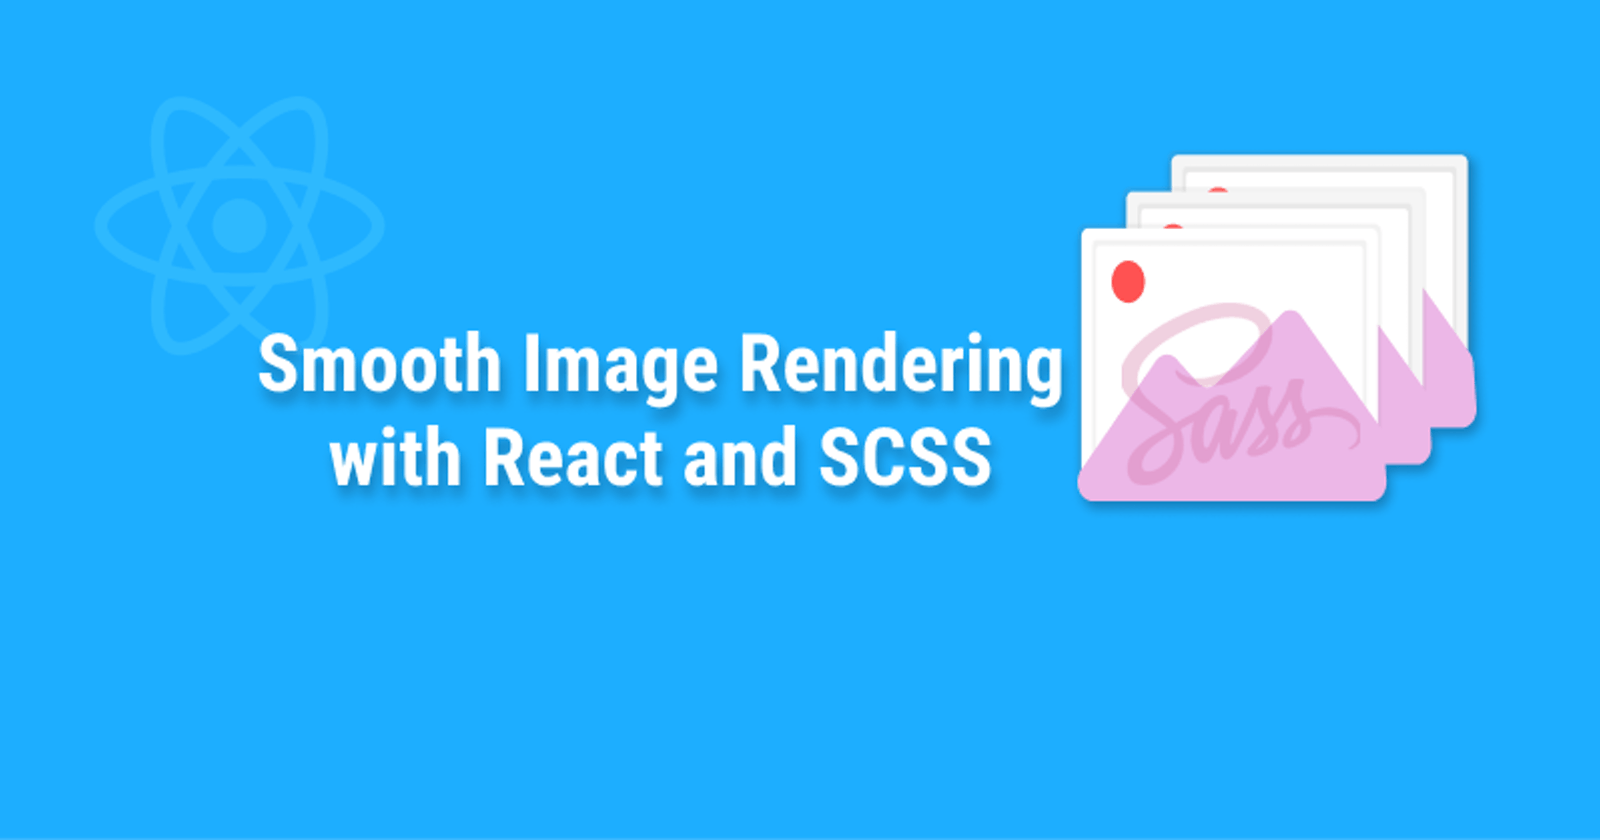 How to Smoothly Render Images in React App?